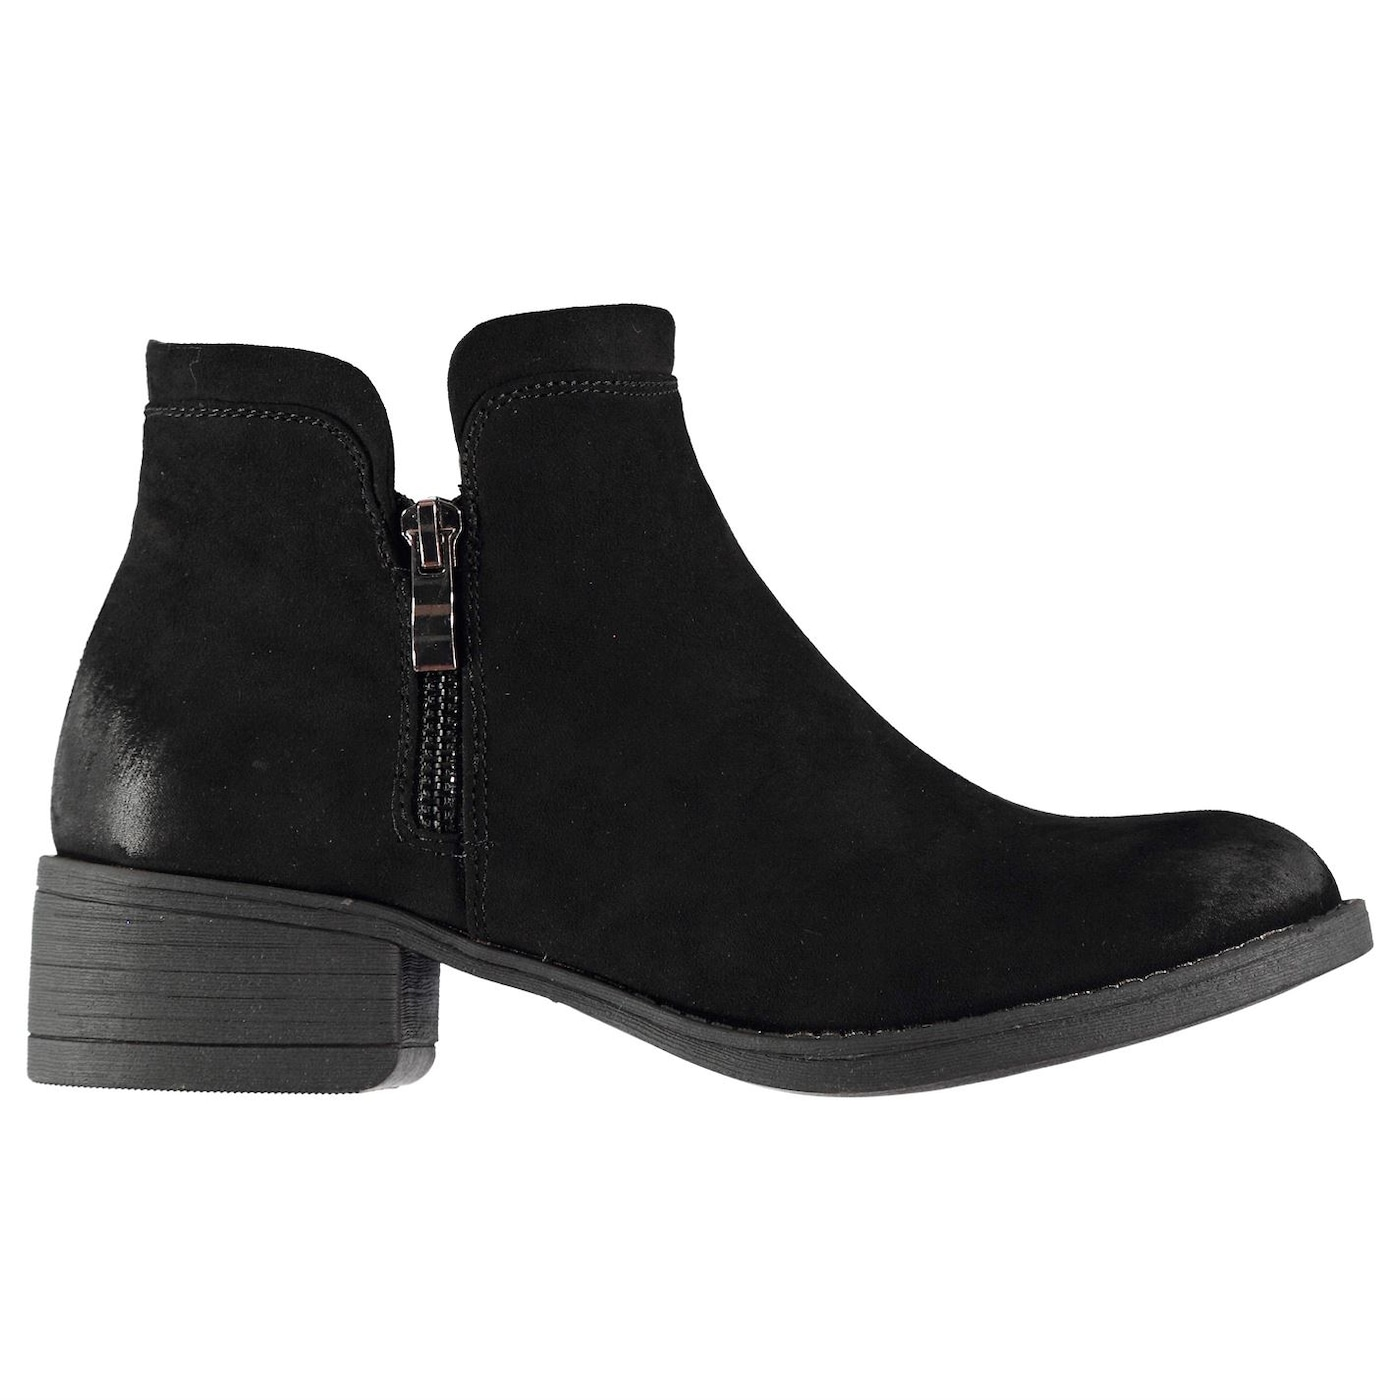 Dolcis Roddy Boots